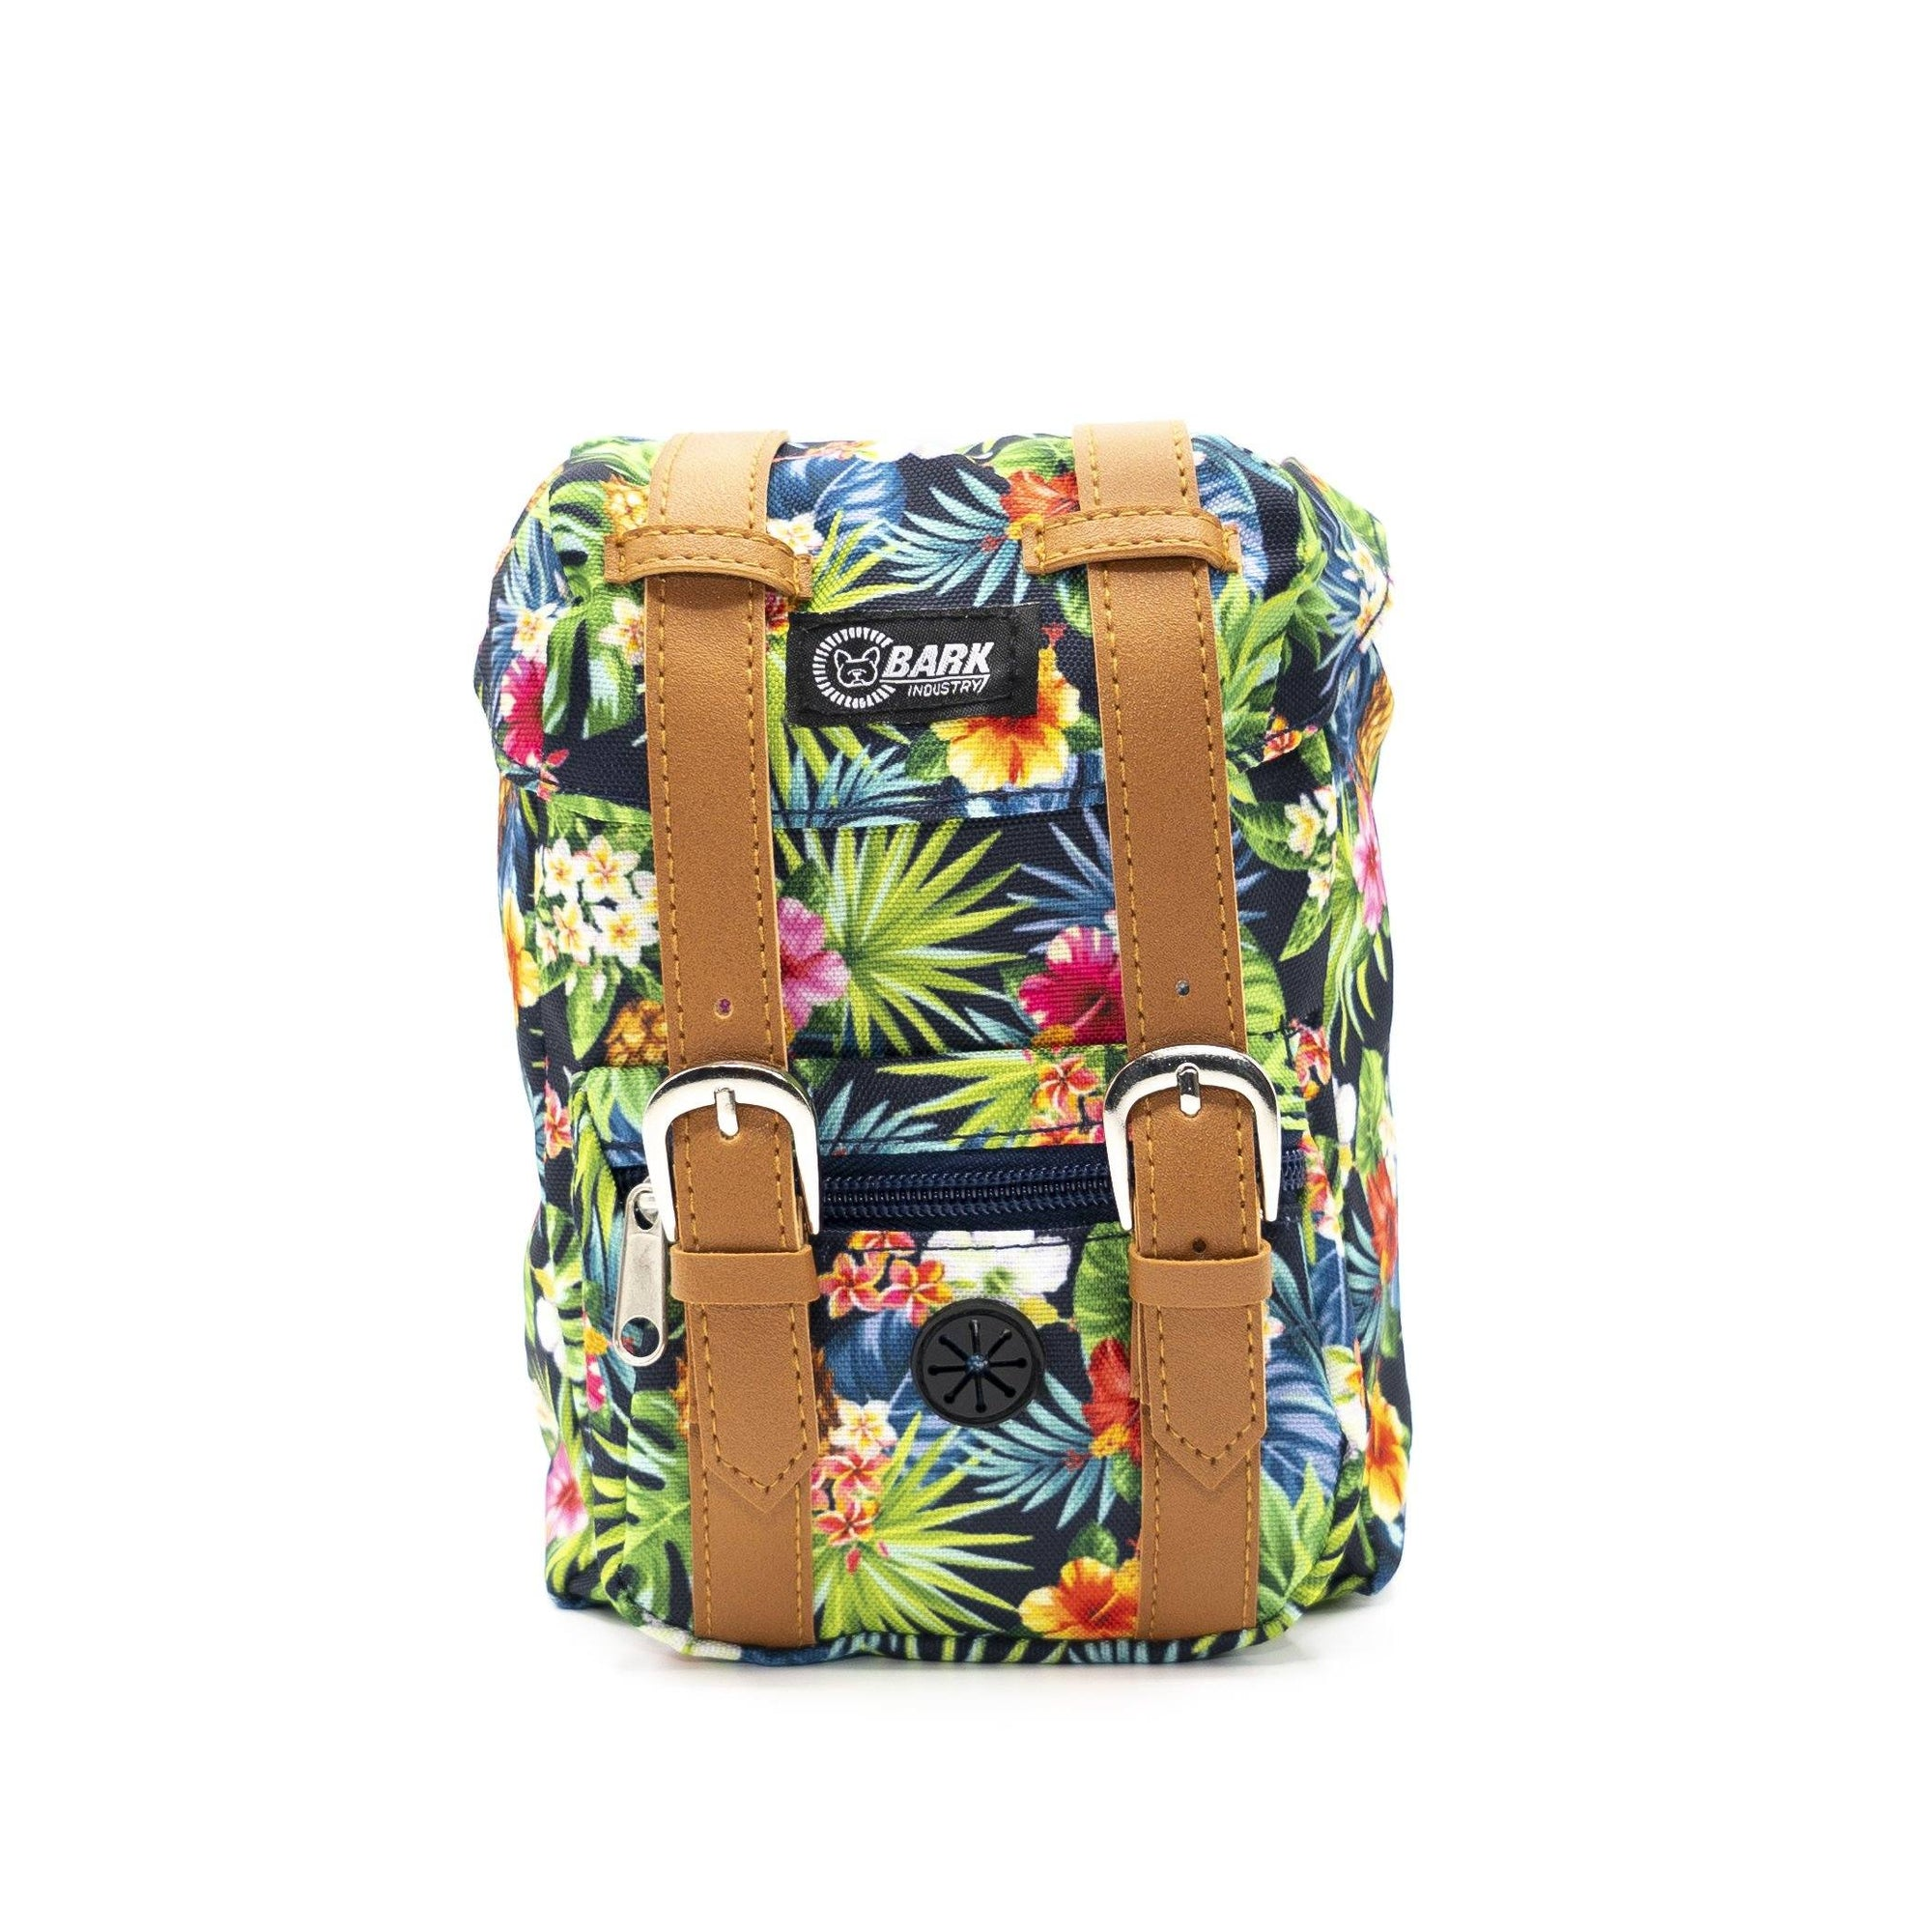 LIMITED HAWAIIAN HAUʻOLI BACKPACK barkindustry